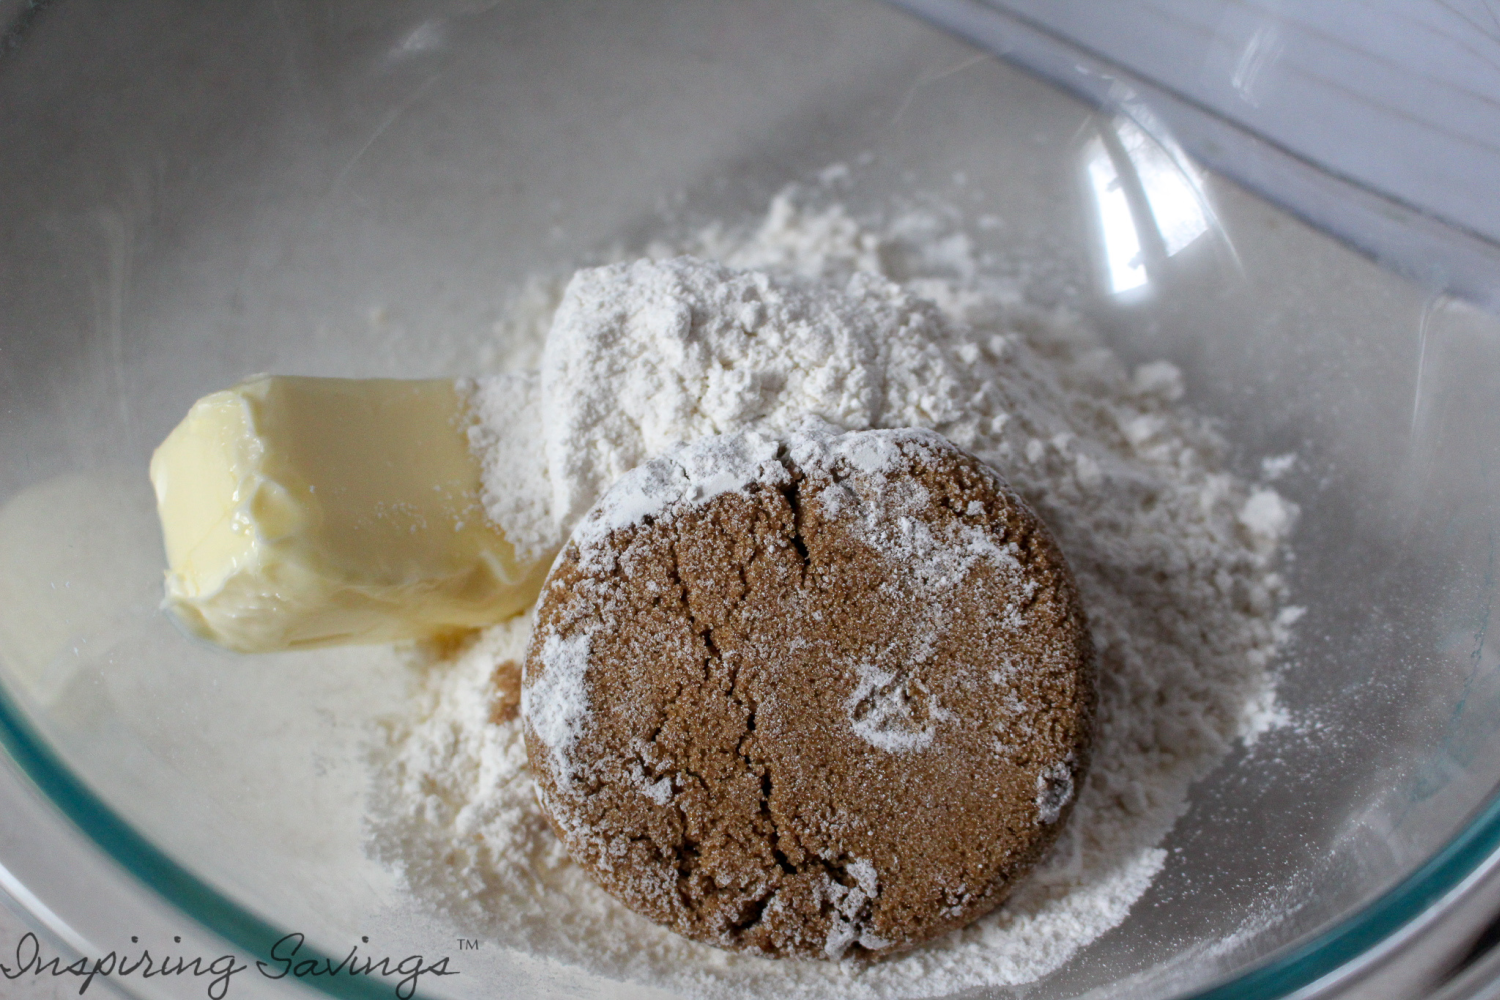 Butter & dry ingredients for shortbread fudgy brownies